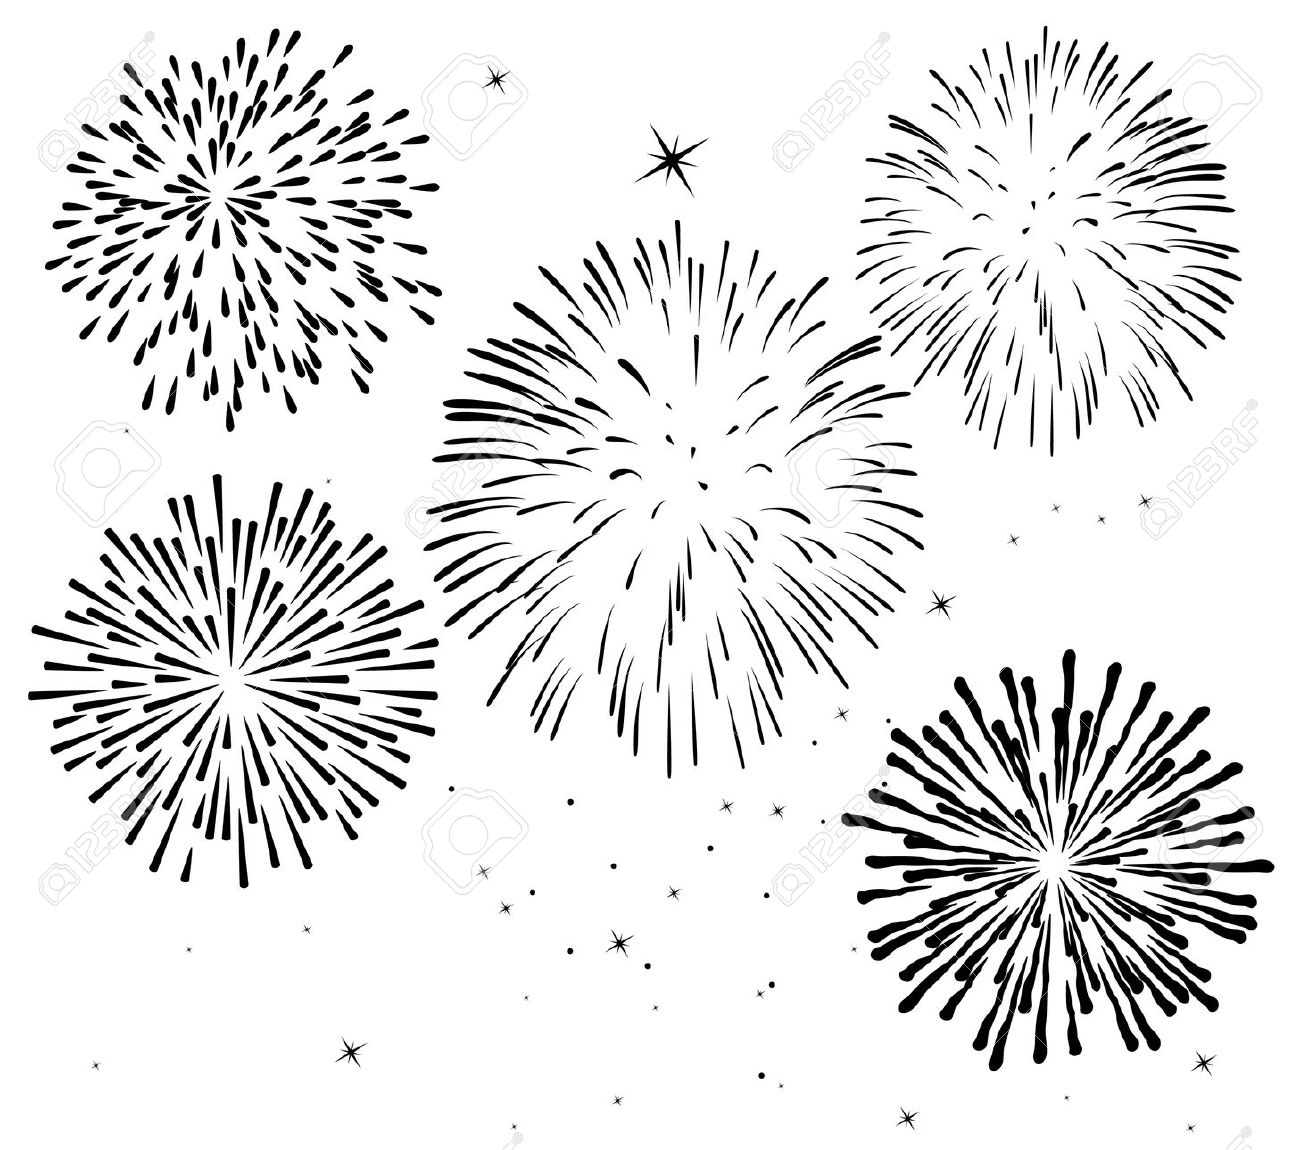 Fireworks clipart black and white Stars Black Vector and red